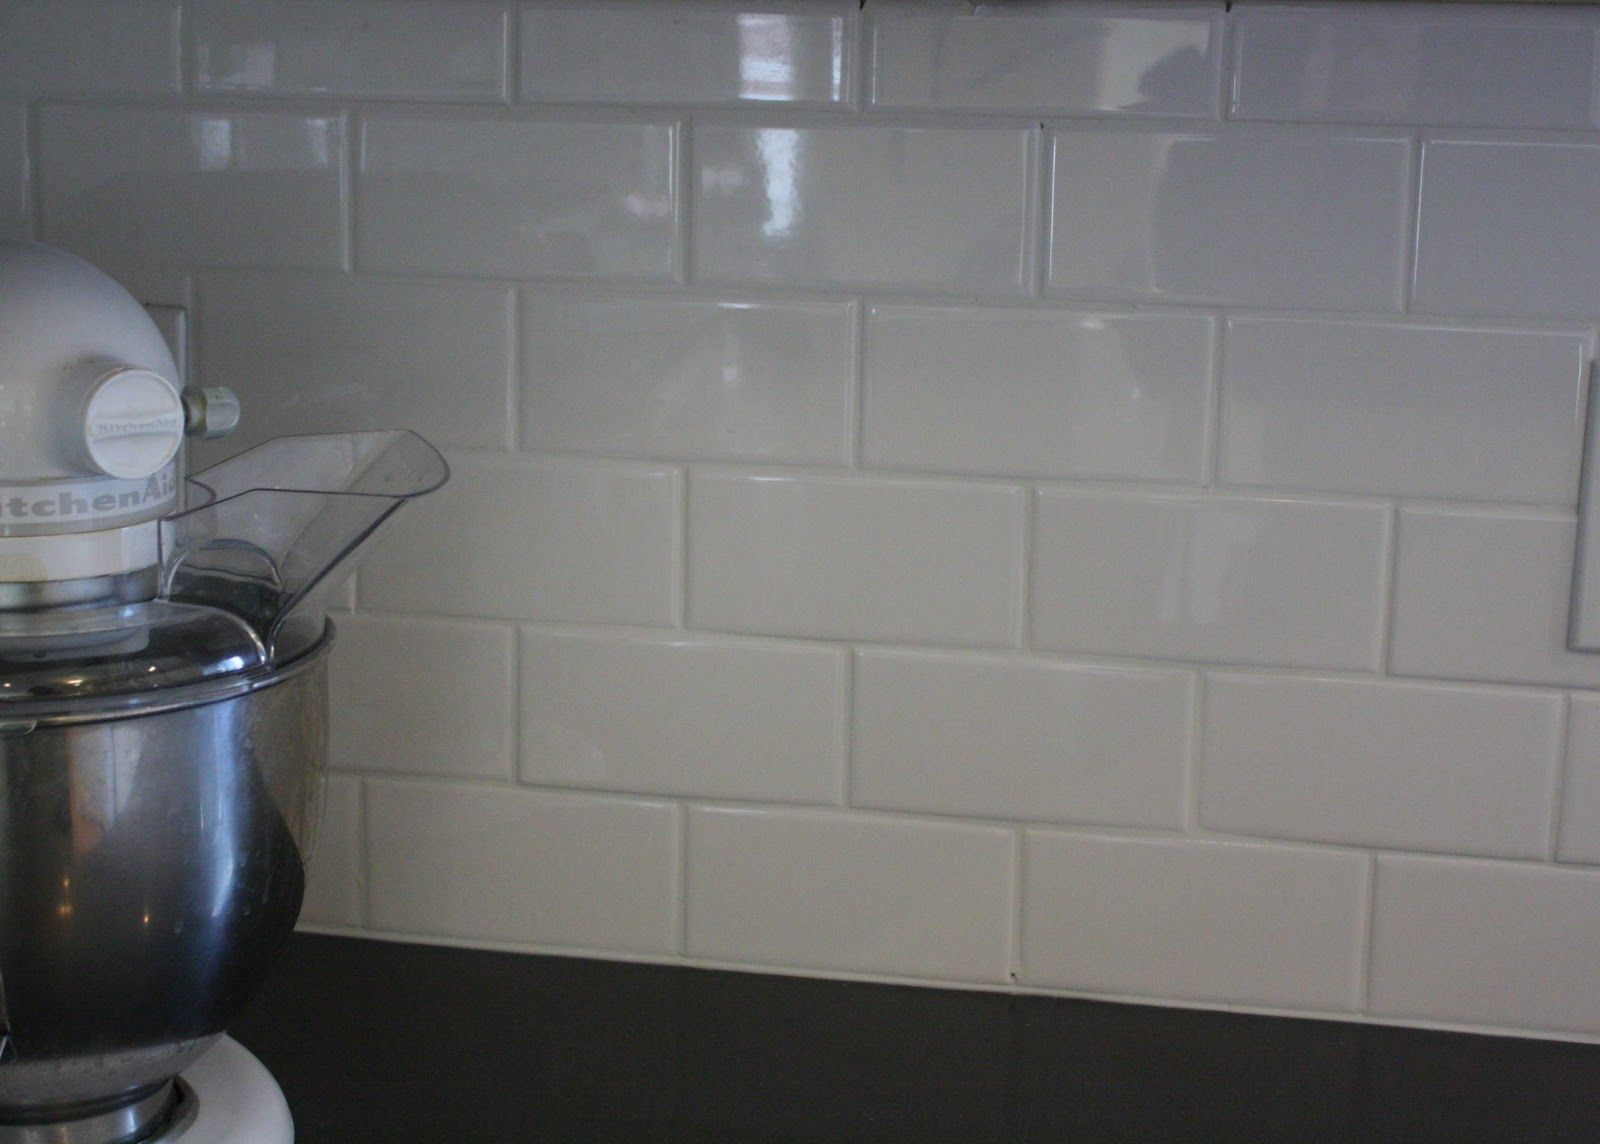 No grout glass tile backsplash love the pure white subway tile no grout glass tile backsplash love the pure white subway tile backsplash but with the dailygadgetfo Choice Image